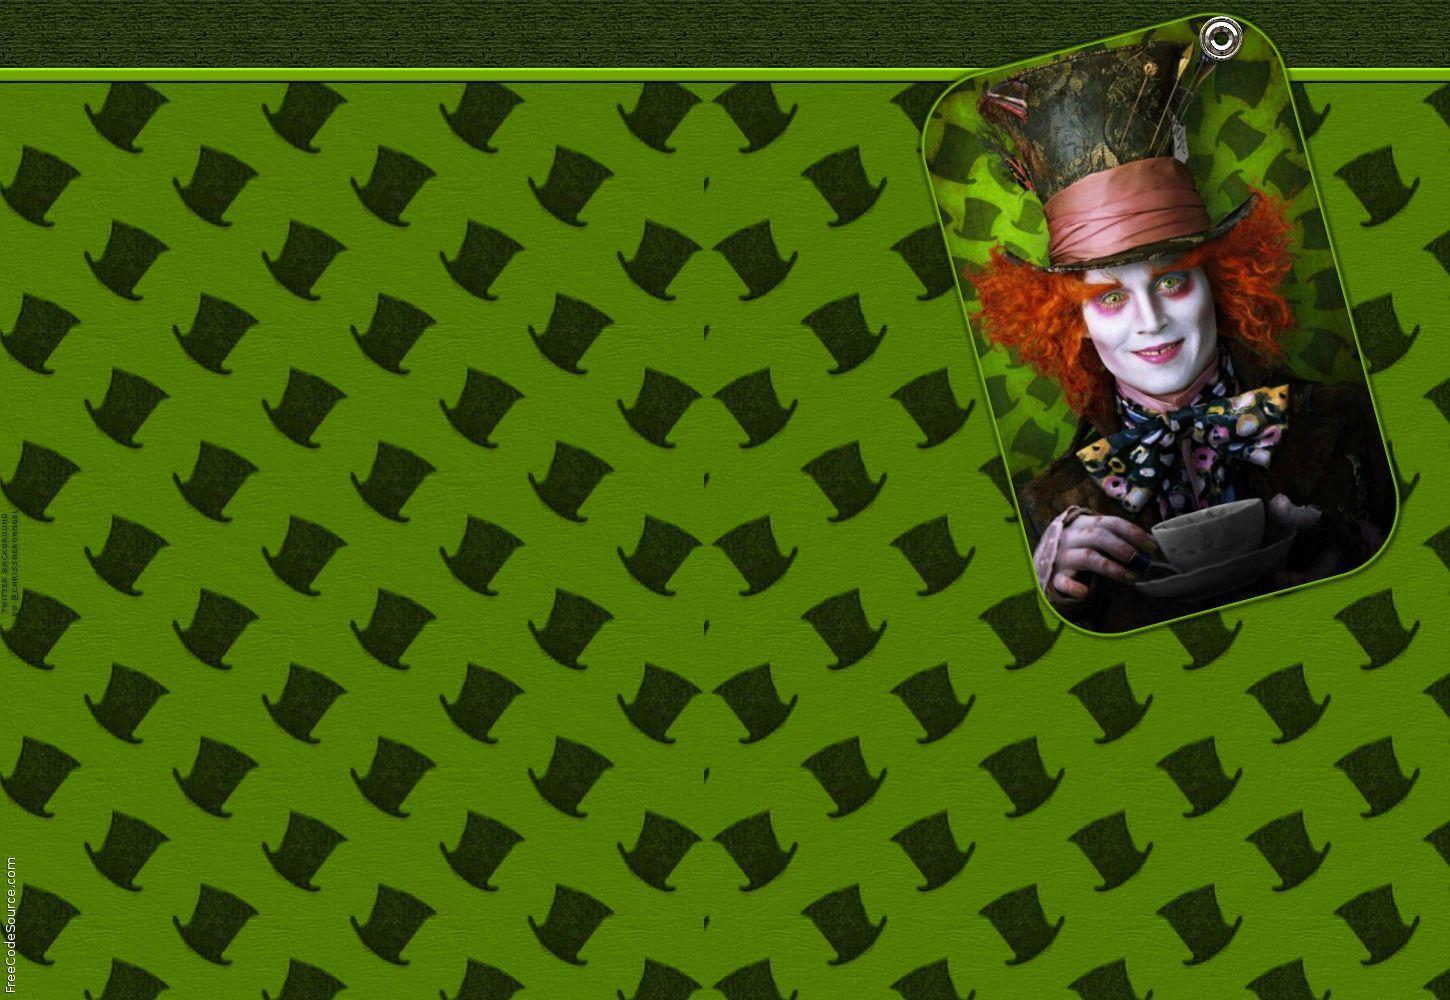 Mad Hatter Wallpapers - Wallpaper Cave